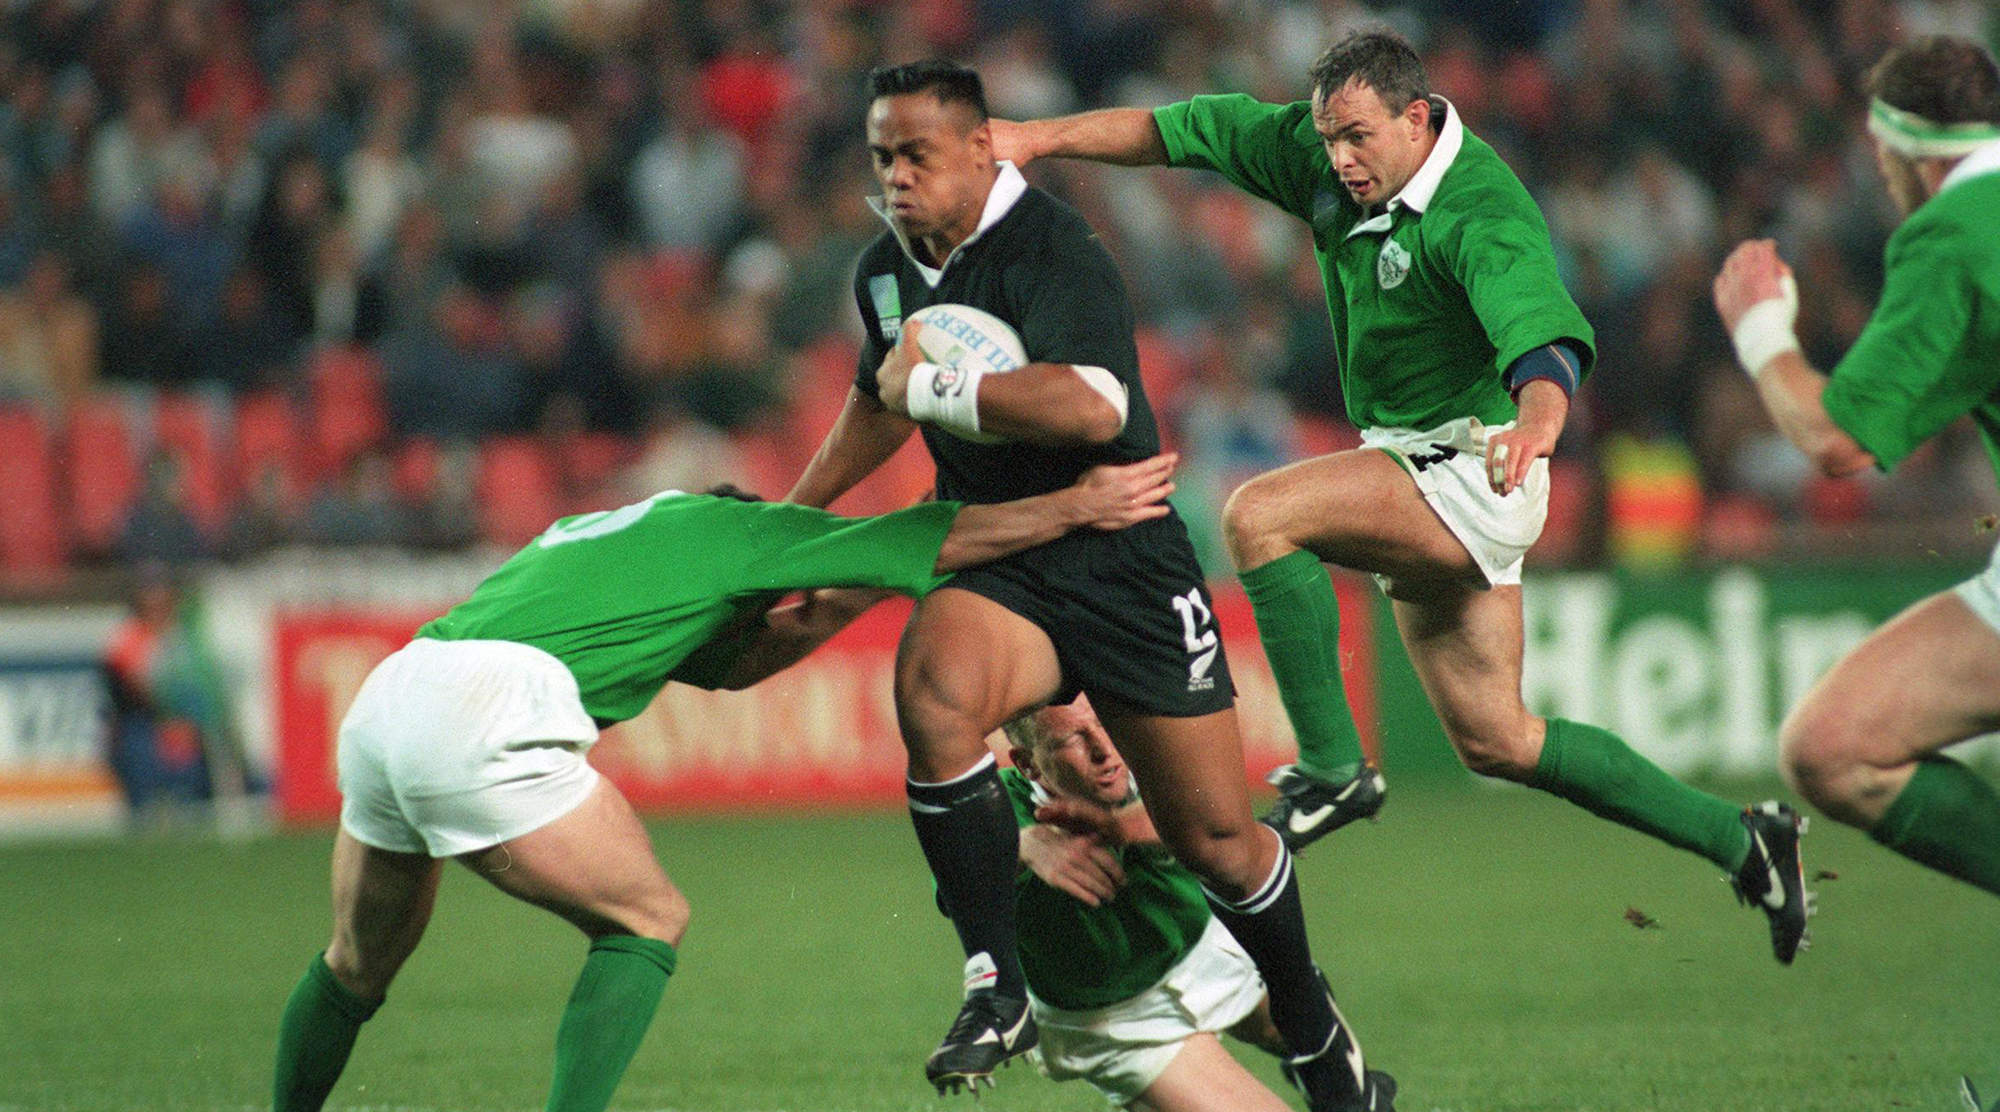 rugby positions explained